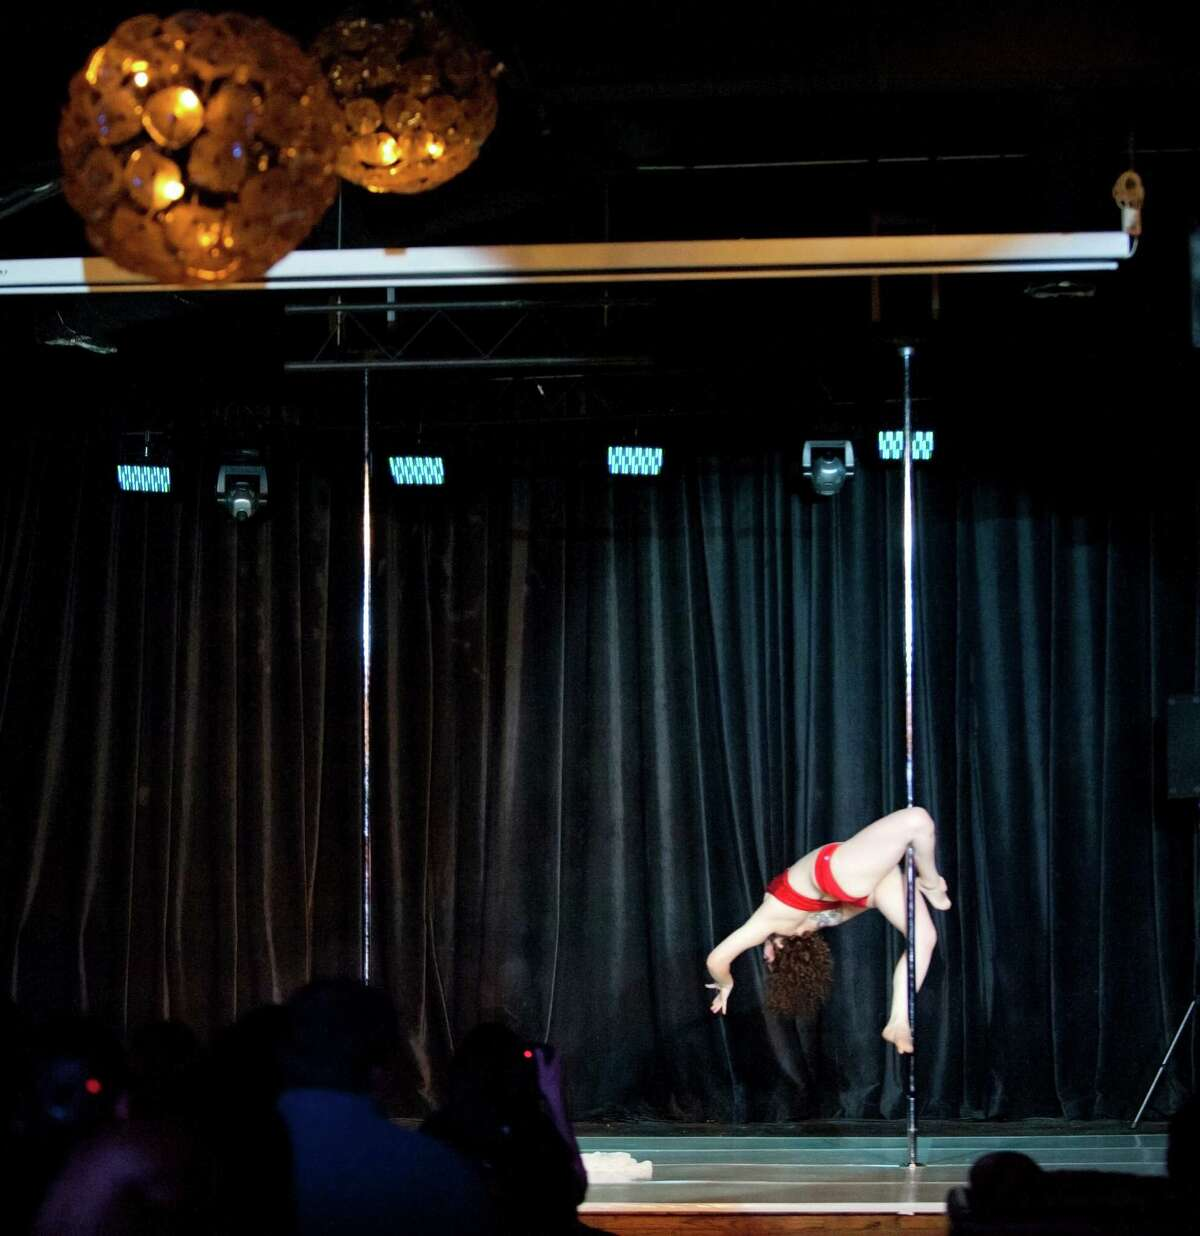 Jillian Boecker, also known as âÄúNotorious Sinner,âÄù dances on the pole at the Melee on the Bayou pole dancing competition at Grooves of Houston in downtown Houston, Texas on Saturday, Nov. 8, 2014.